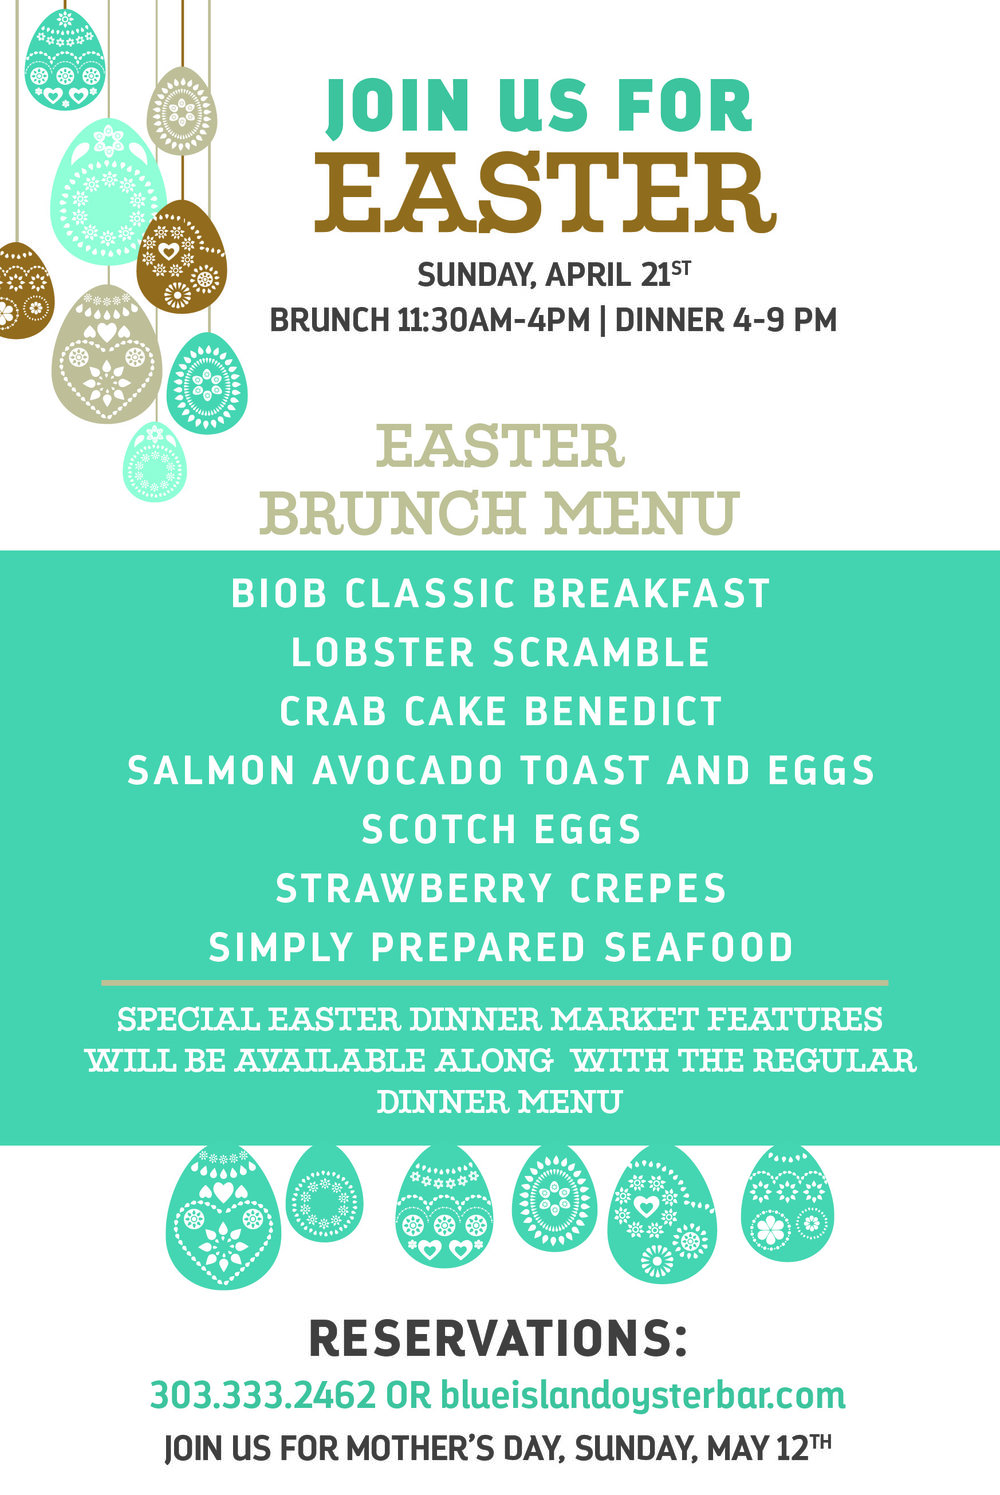 Join UsFor Easter Brunch - Make your reservations now for Easter Brunch or Dinner! Open at 11:30am - call 303-333-2462 or click below: